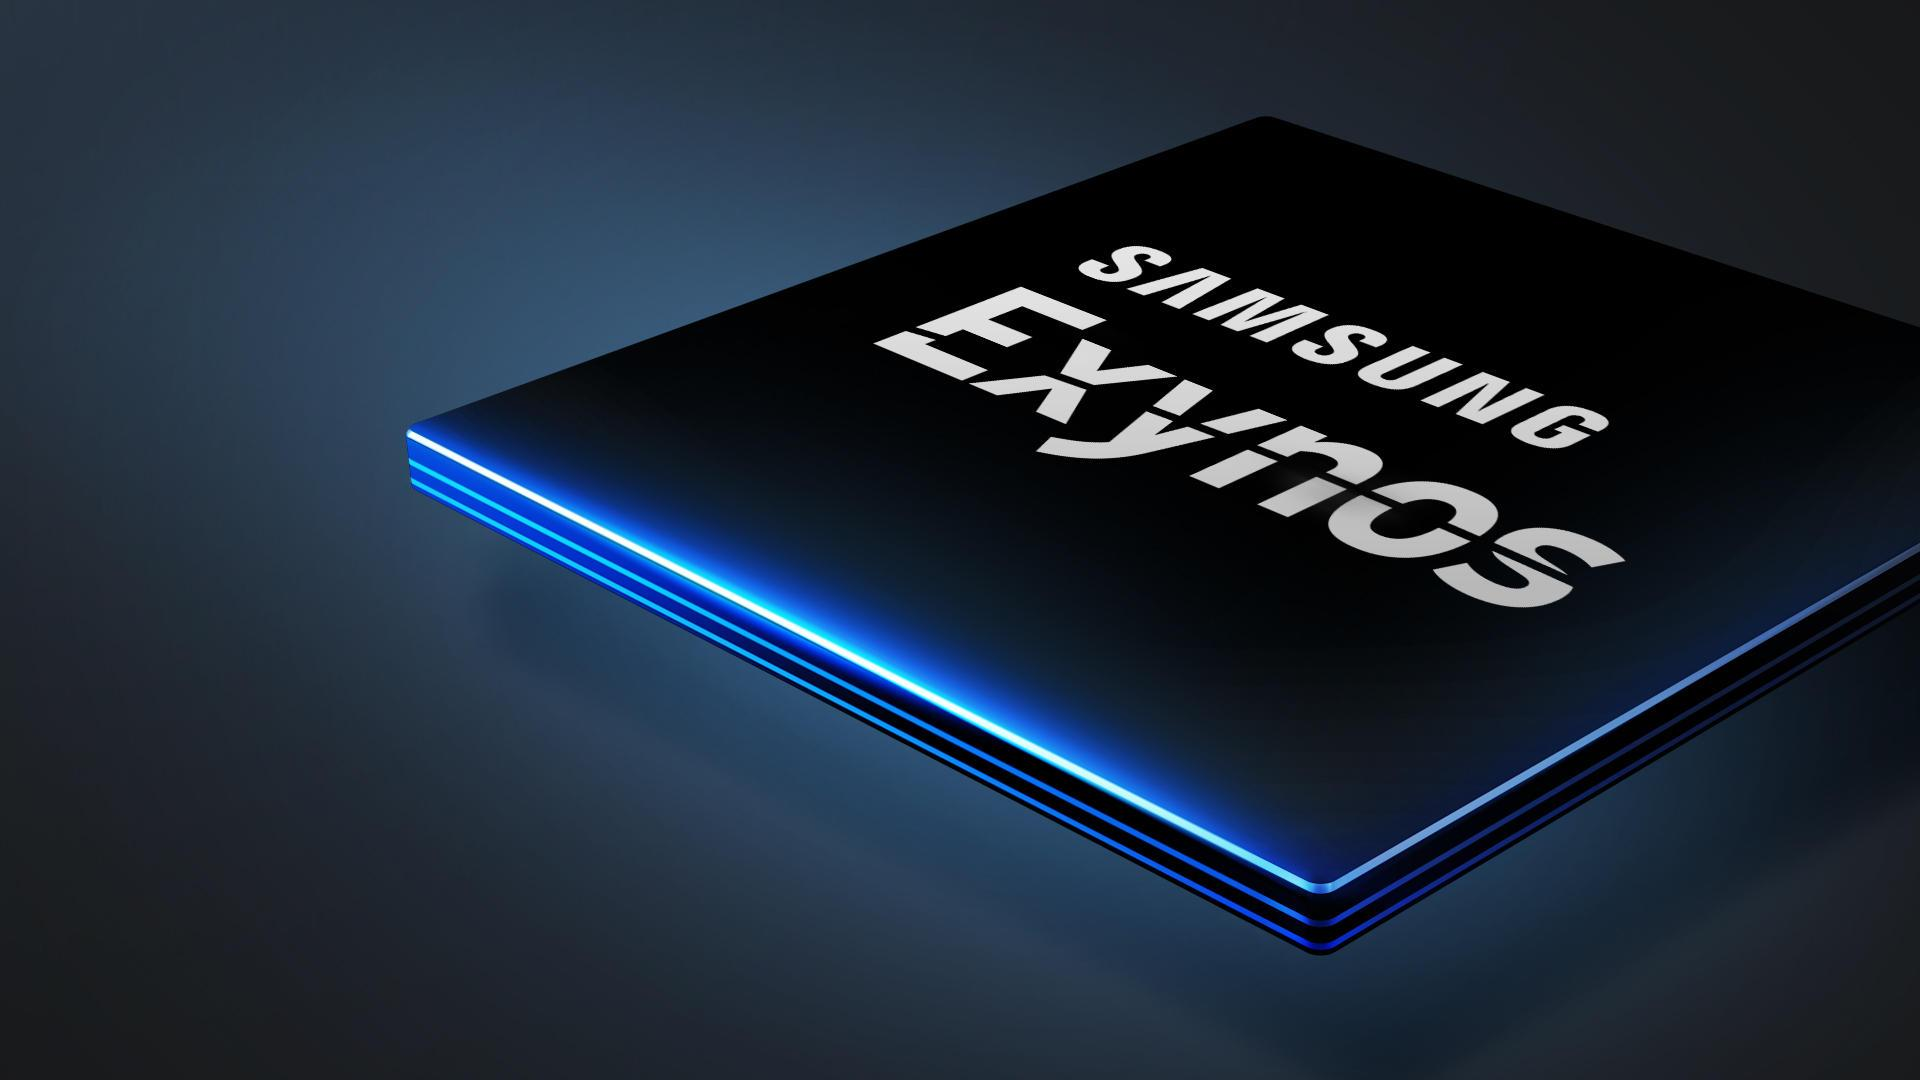 三星自曝Exynos 9810處理器頻率:小核心高達1.9GHz - XFastest - exynos-featured.jpg